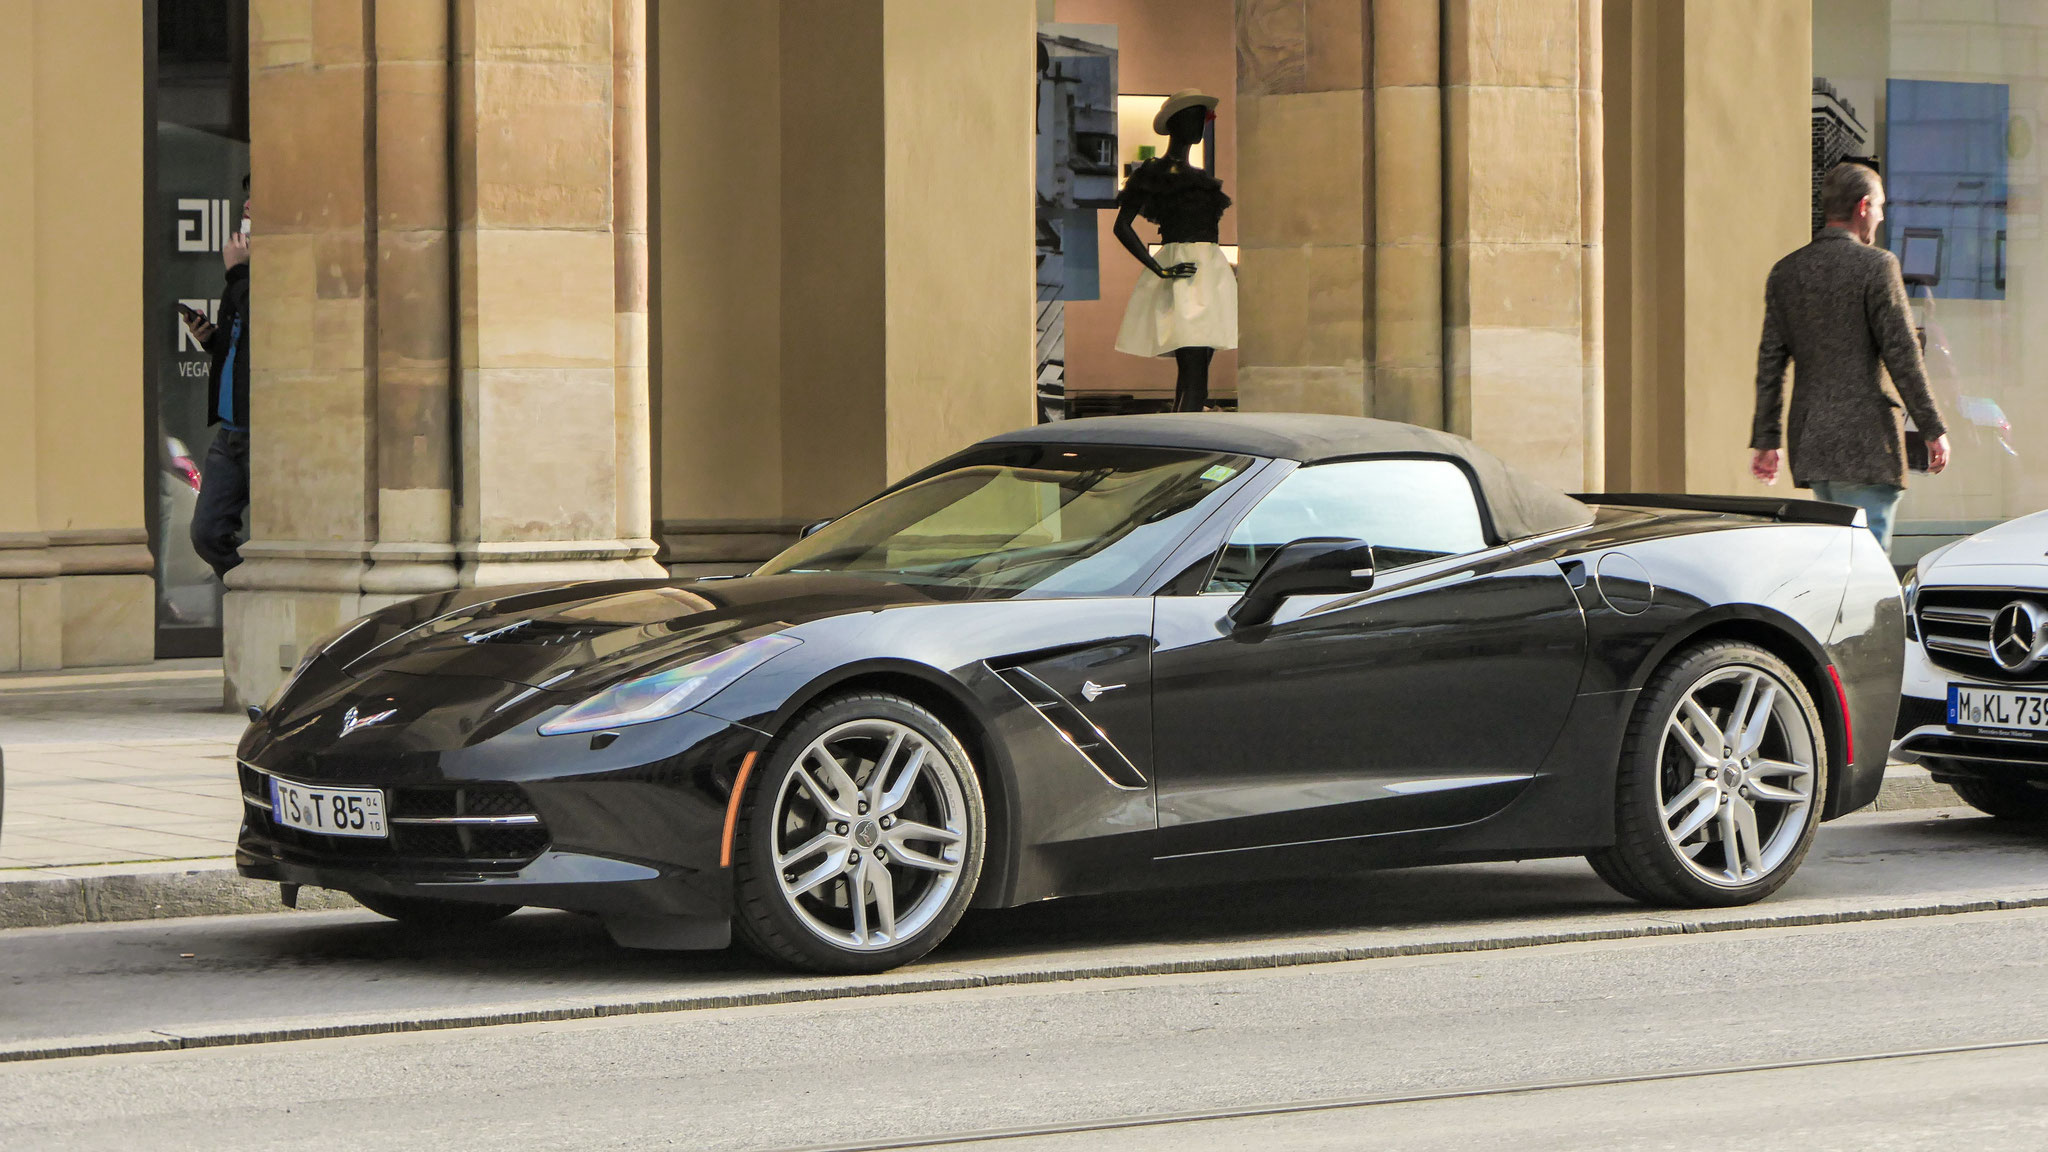 Chevrolet Corvette C7 Stingray Convertible - TS-T-85